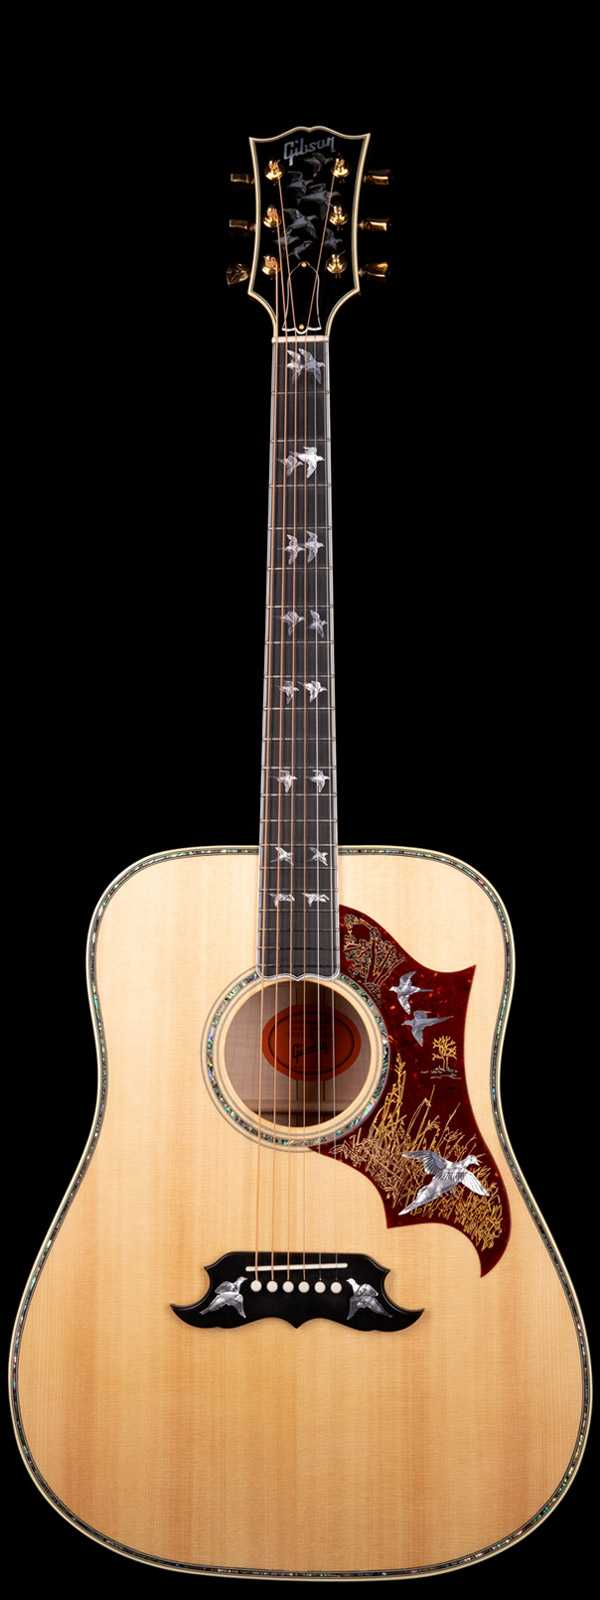 Gibson Custom Shop Doves In Flight Sitka Spruce Top Flame Maple Back Antique Natural